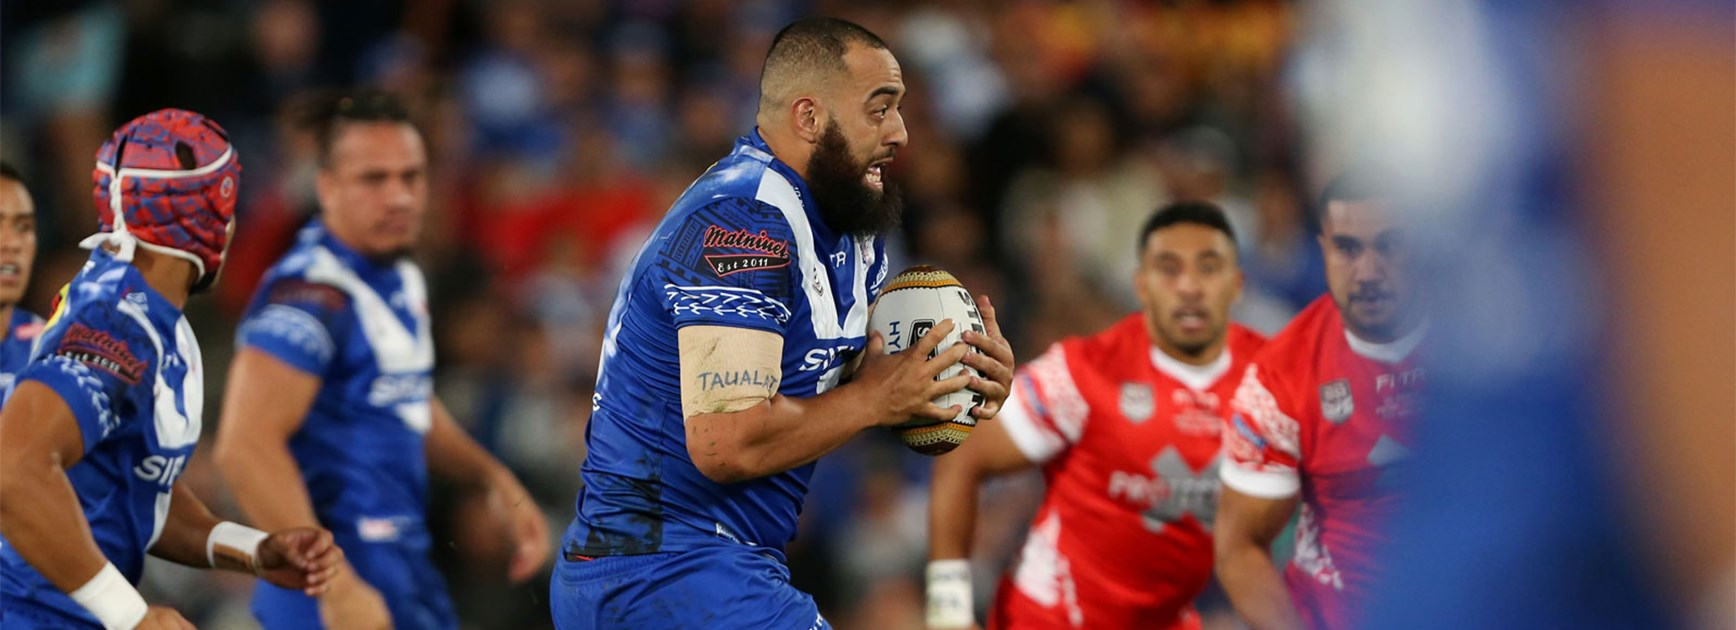 Frank Pritchard takes a hit-up for Samoa against Tonga on Saturday night.